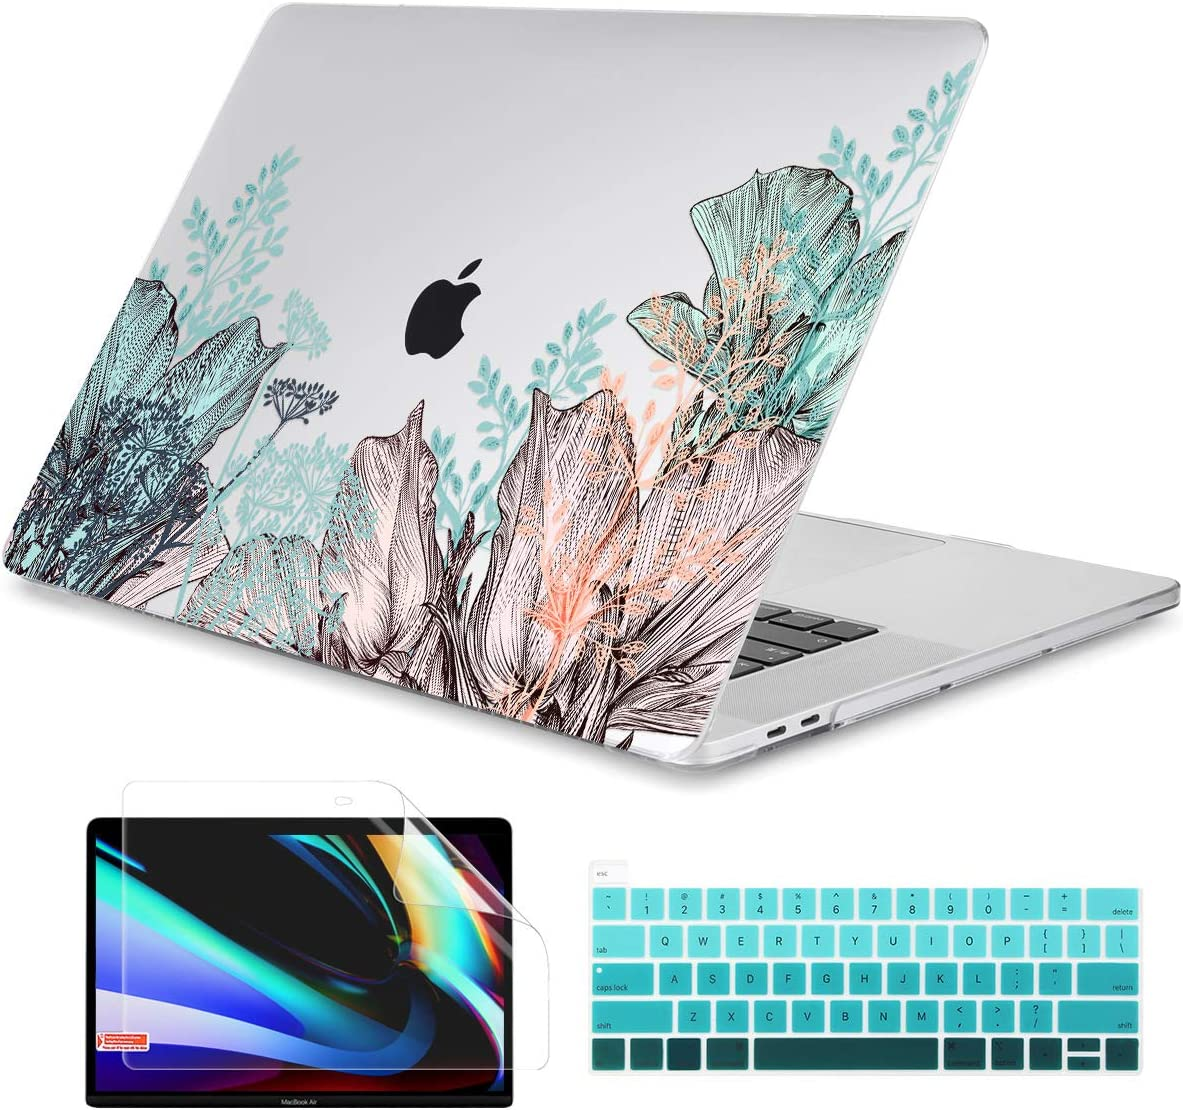 Dongke MacBook Pro 13 inch Case Model A2251/A2289 2020 Released, Plastic Hard Shell Case Cover for MacBook Pro 13 inch with Retina Display & Touch Bar Fits Touch ID, Small Summer Field